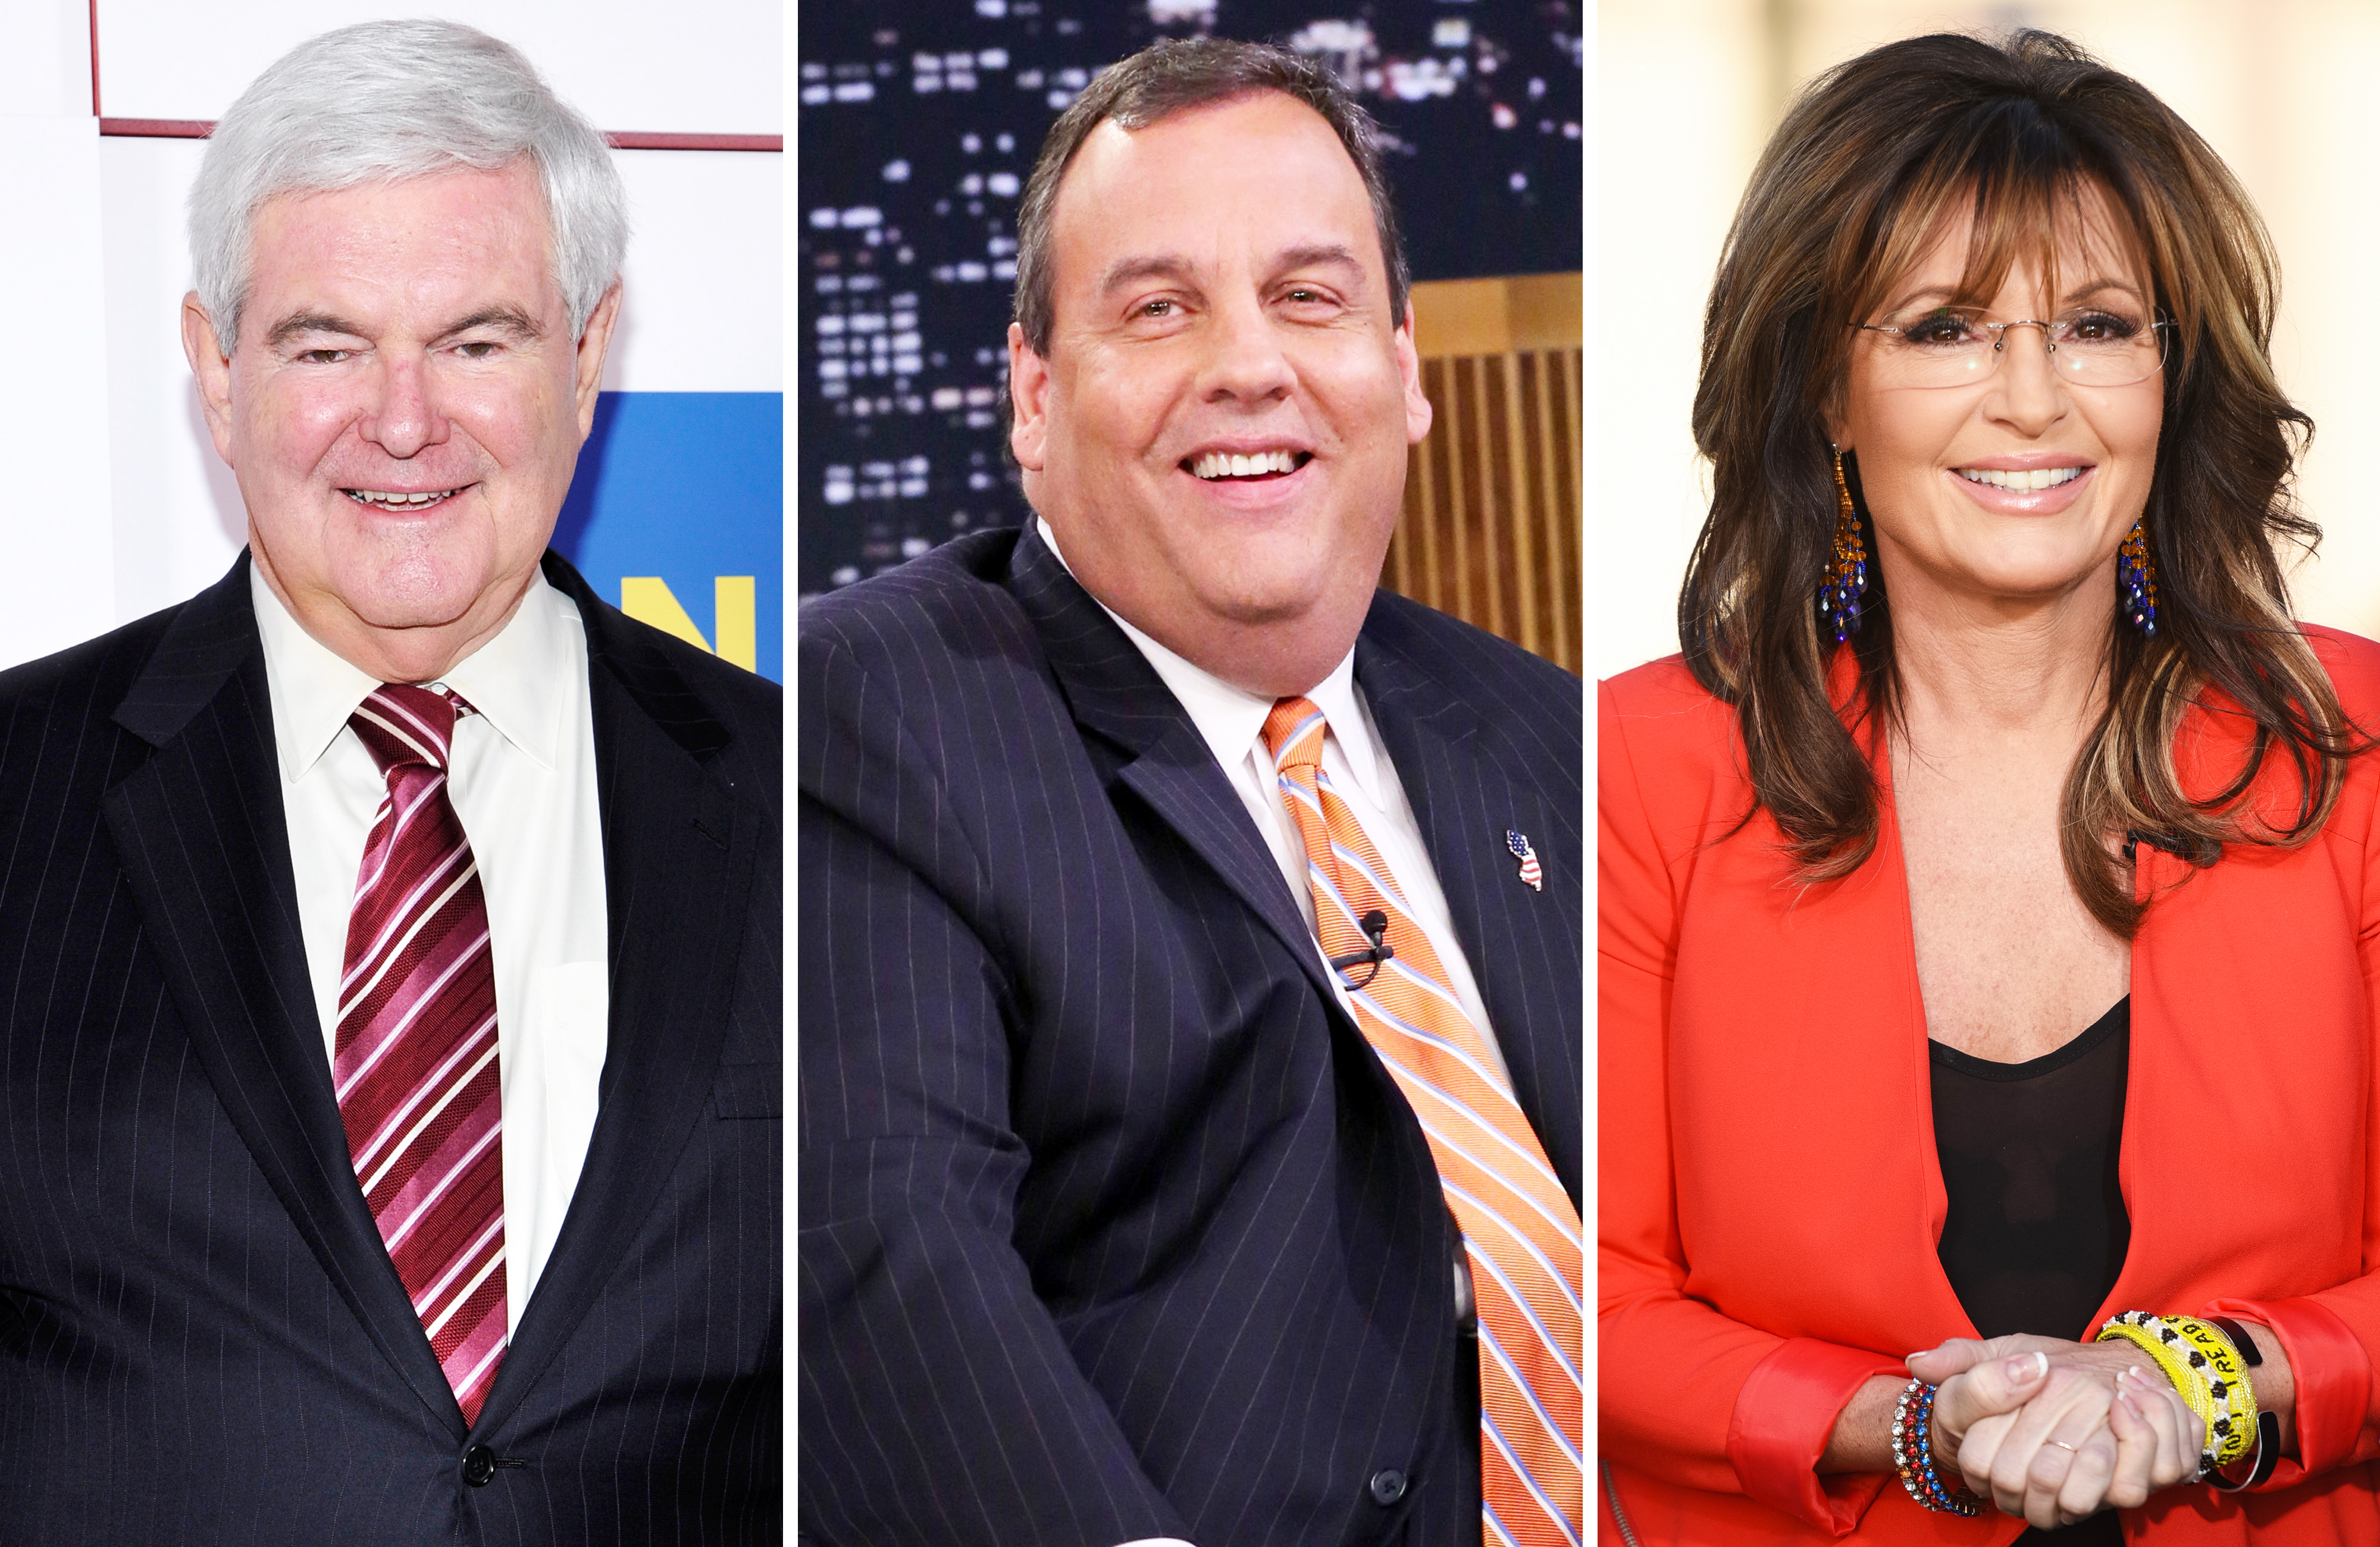 Newt Gingrich, Chris Christie and Sarah Palin